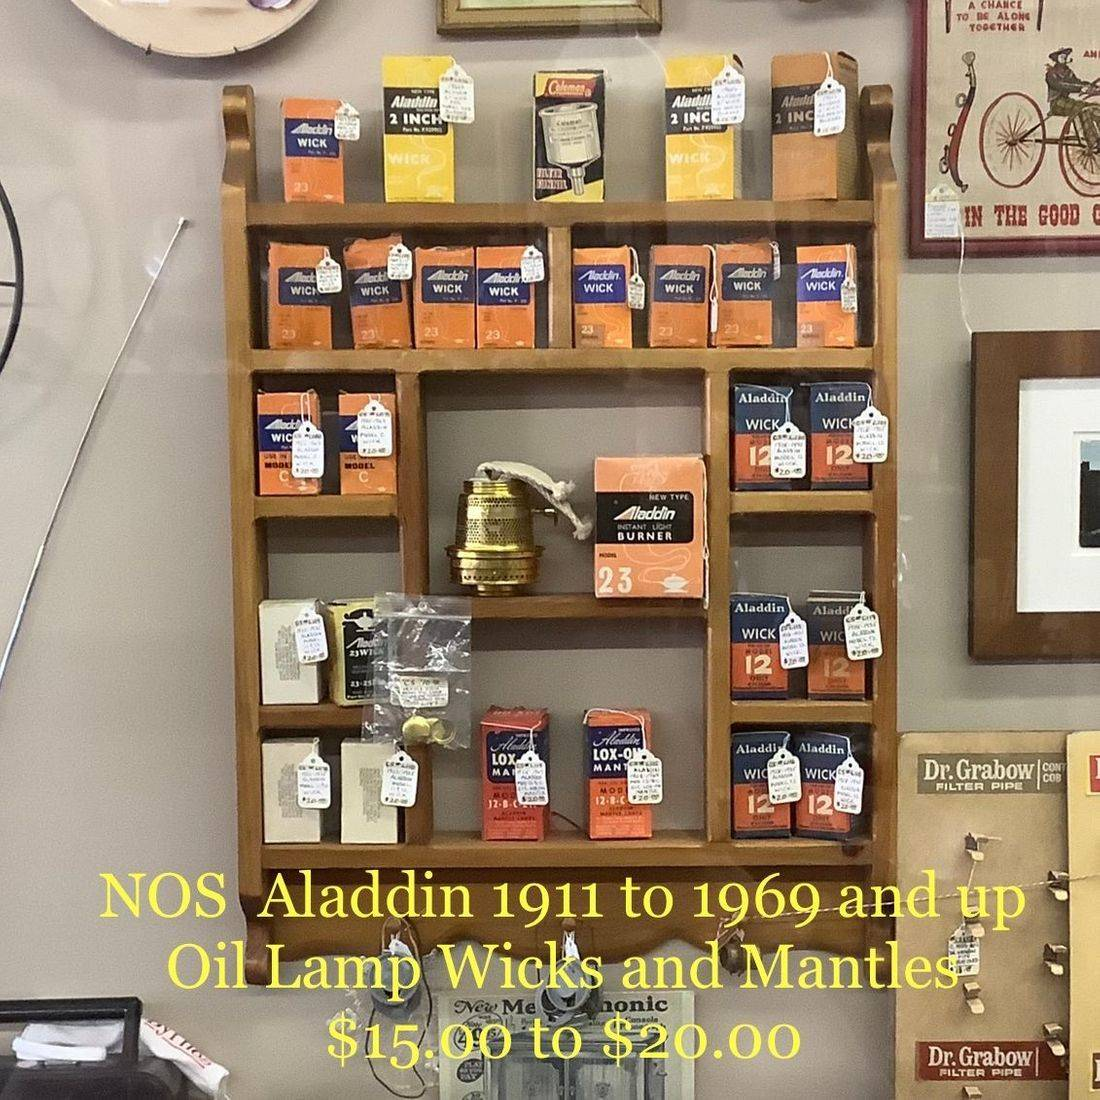 NOS Aladdin 1911 to 1969 & up Oil Lamp Mantles and Wicks